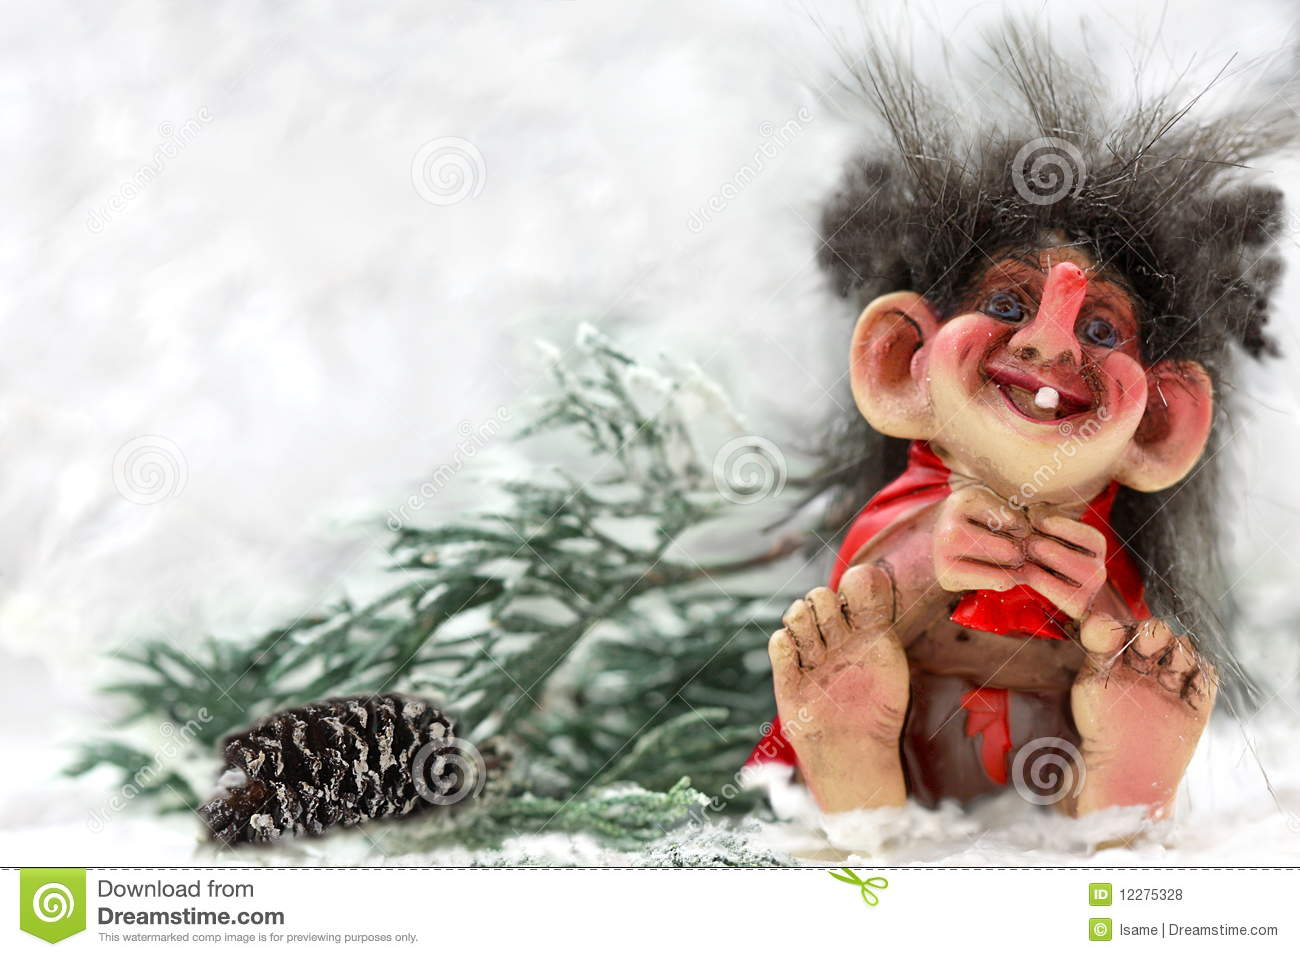 Troll Stock Photos - Download 5,380 Images